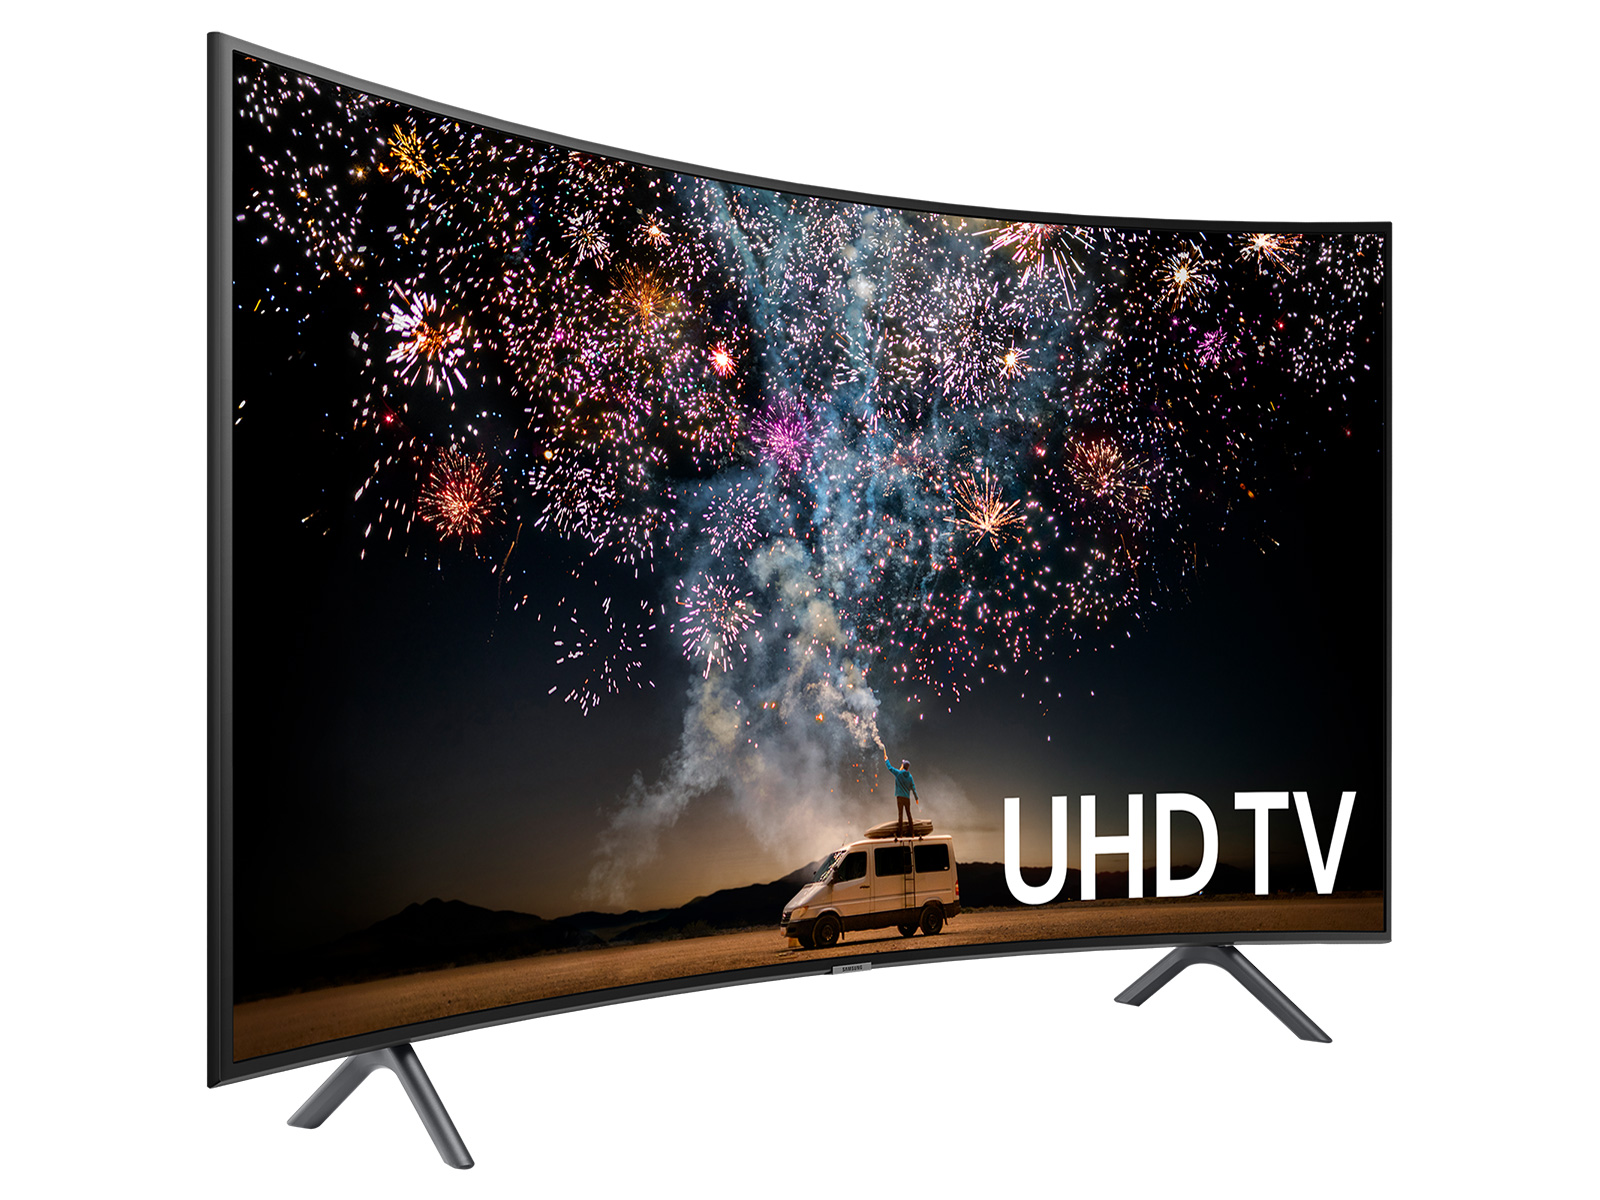 "Tv Uhd 4k Uhd 4k Curved Smart Tv Ru7300 55"" - Specs & Price 